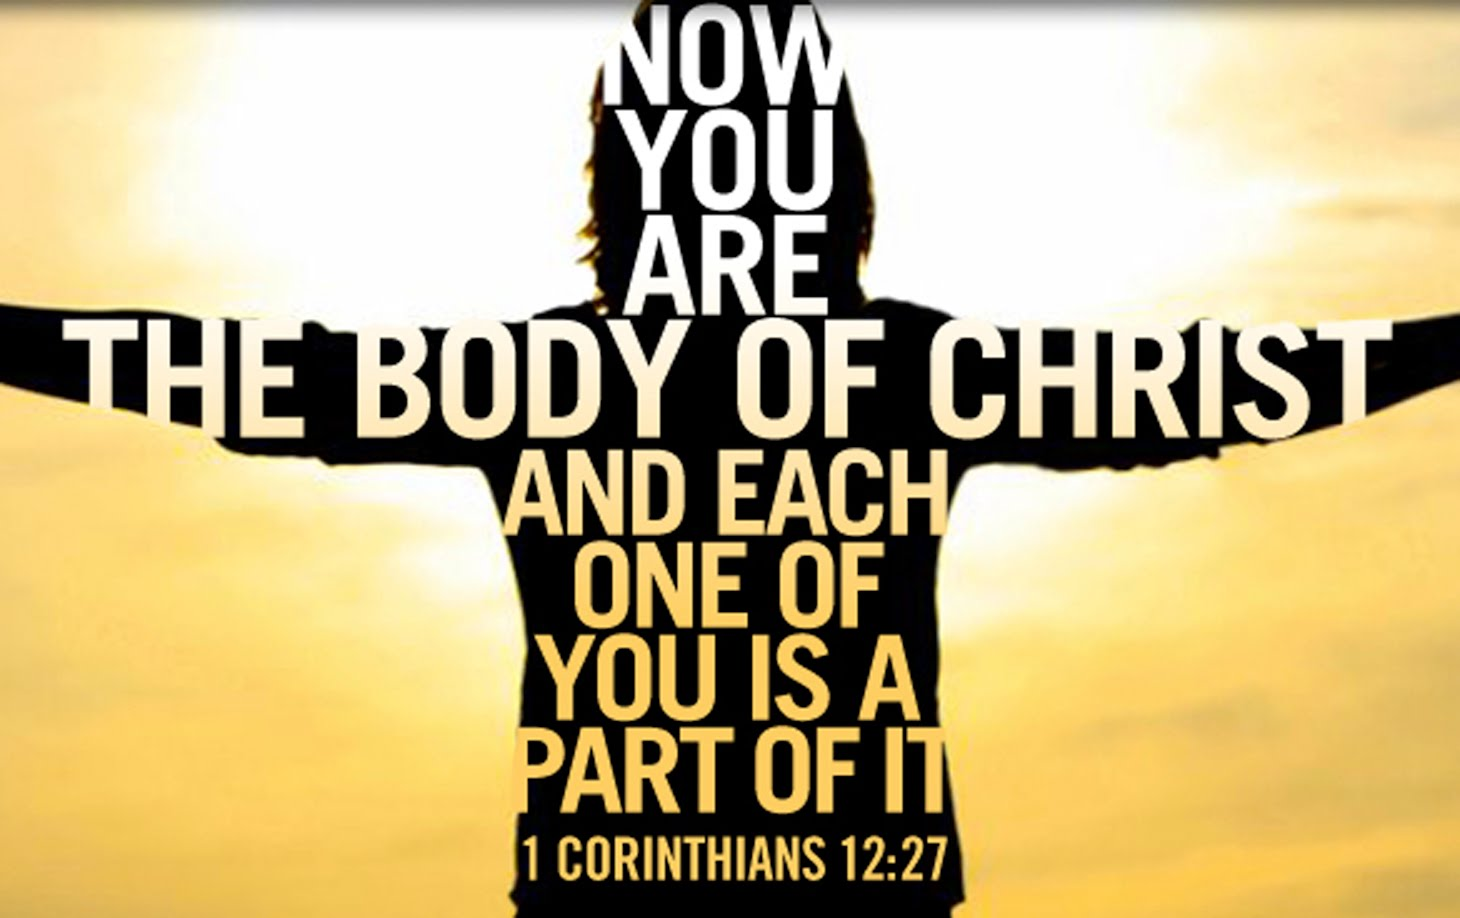 Generally speaking, spiritual gifts are God-given graces (special abilities, offices, or manifestations) meant for works of service, to benefit and build up the body of Christ as a whole (1 Corinthians 12:27).